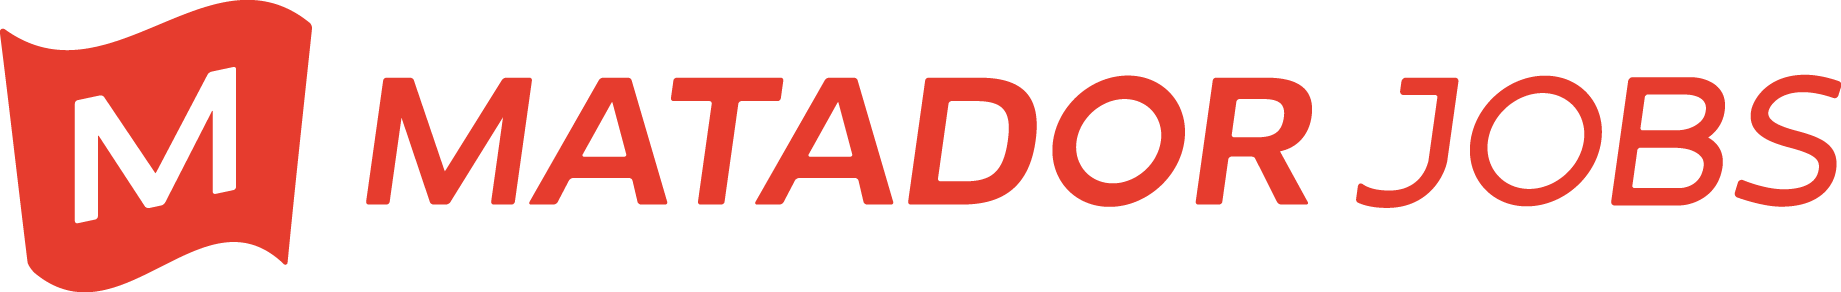 matador-jobs-logo-red-rgb